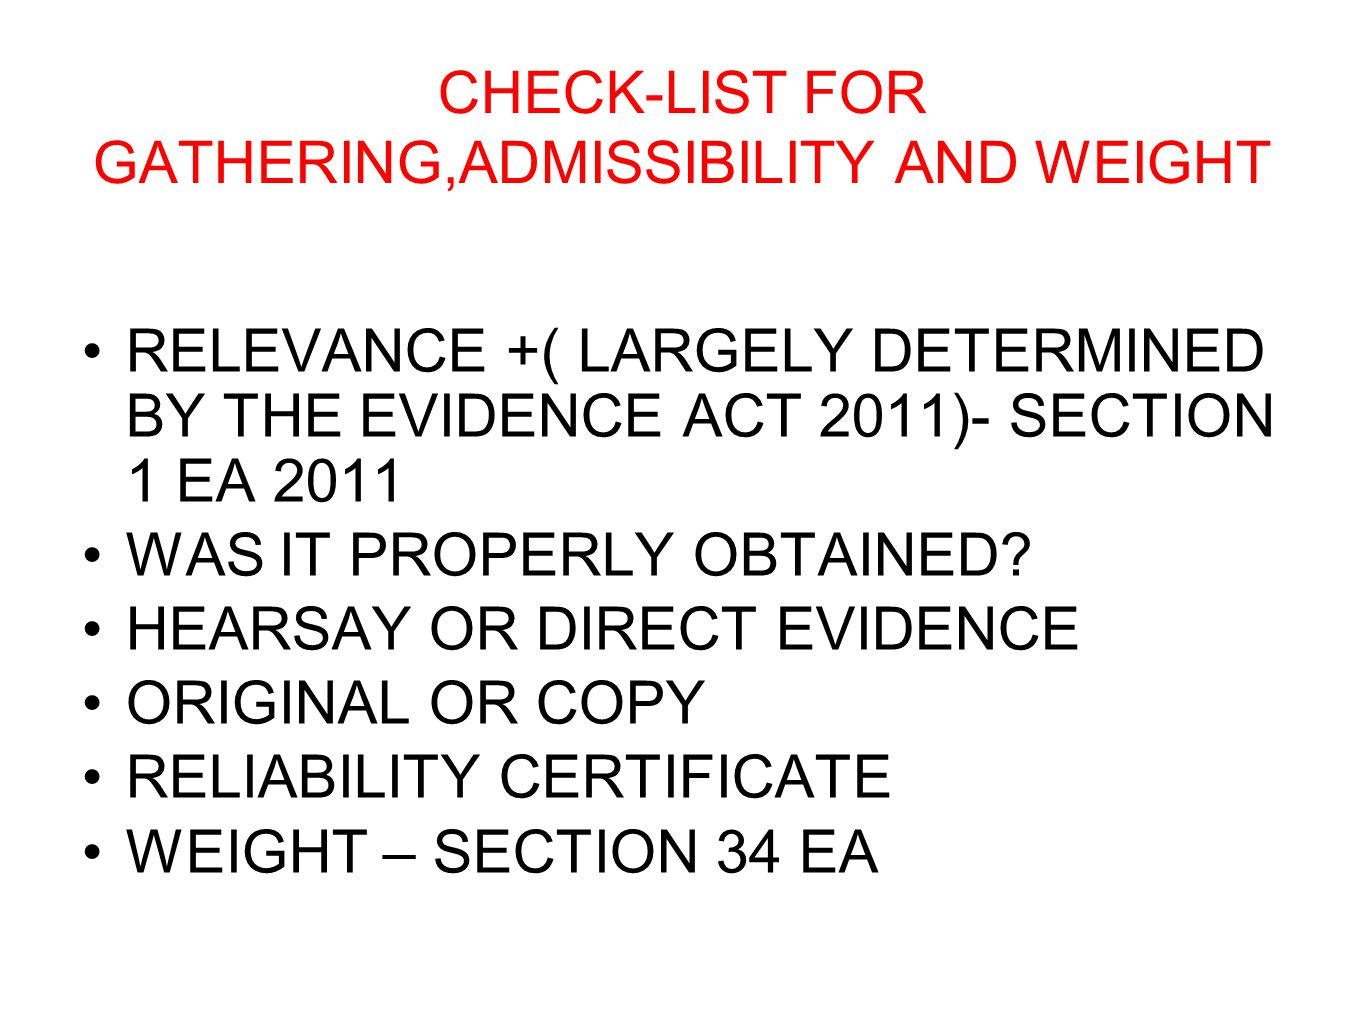 CHECK-LIST FOR GATHERING,ADMISSIBILITY AND WEIGHT